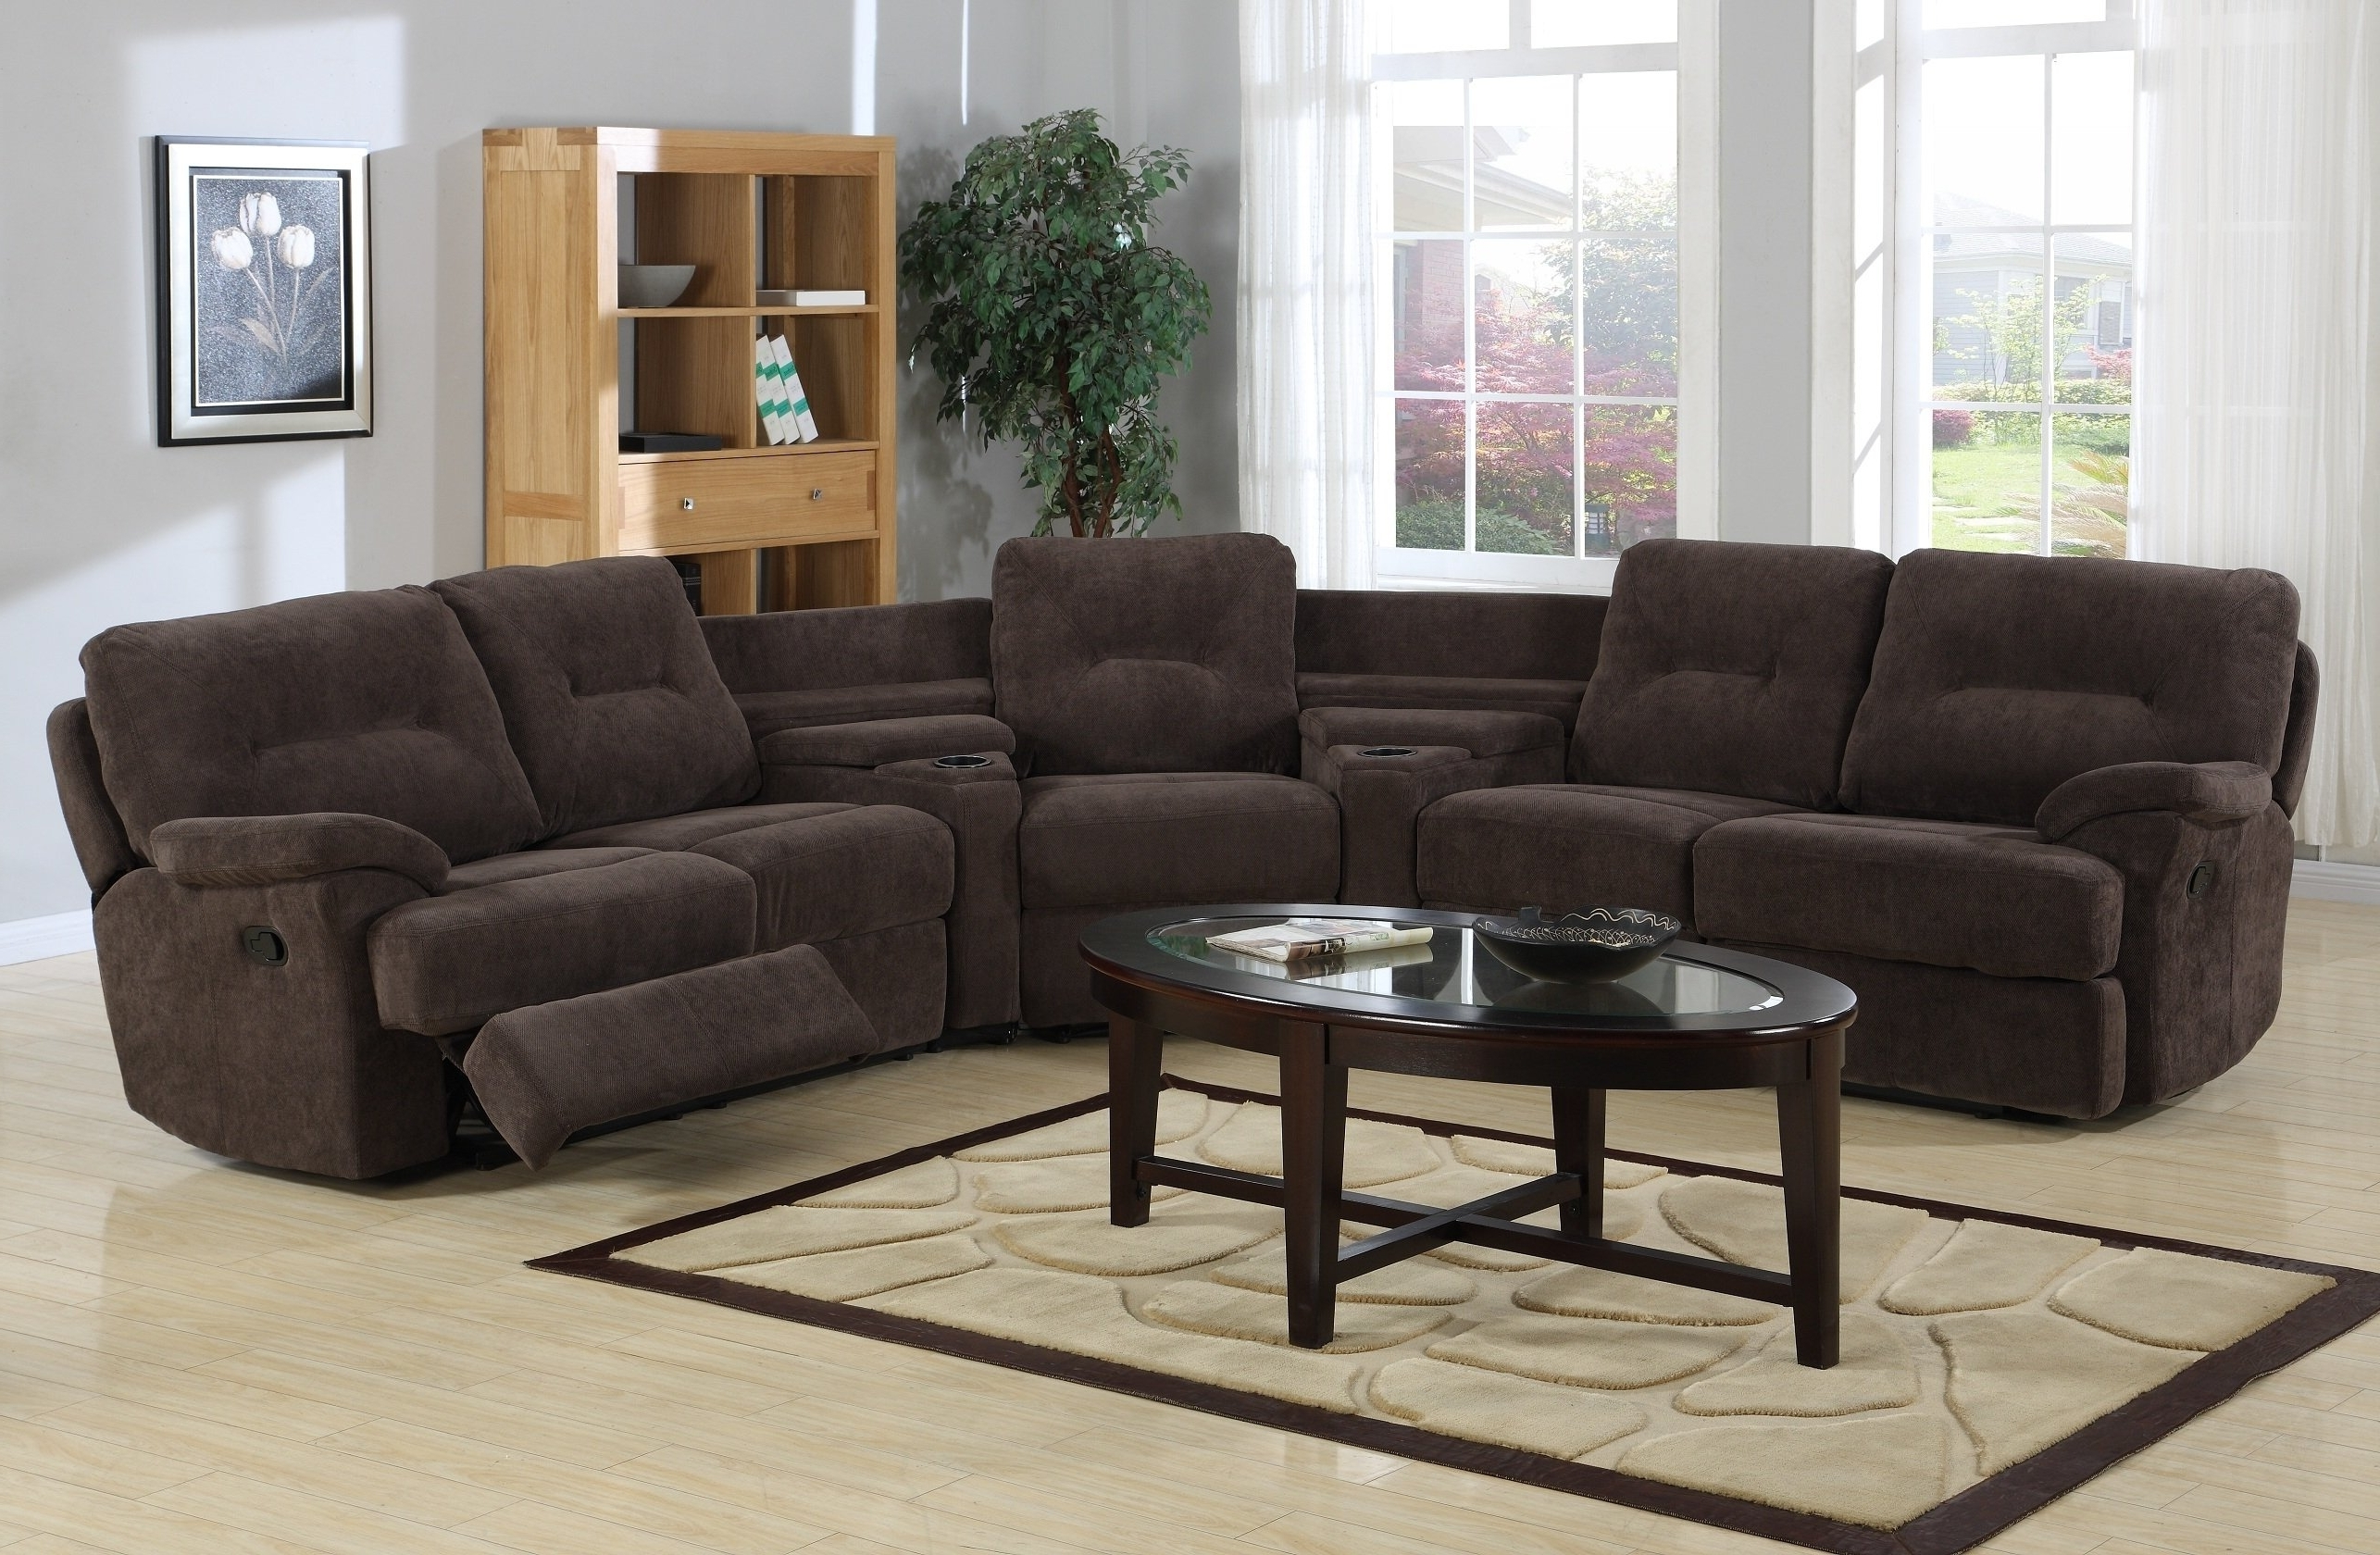 Most Recently Released Hickory Nc Sectional Sofas With Sofas Center Curved Sectional Sofas Hickory Nc Luxury Sofa With (View 1 of 20)